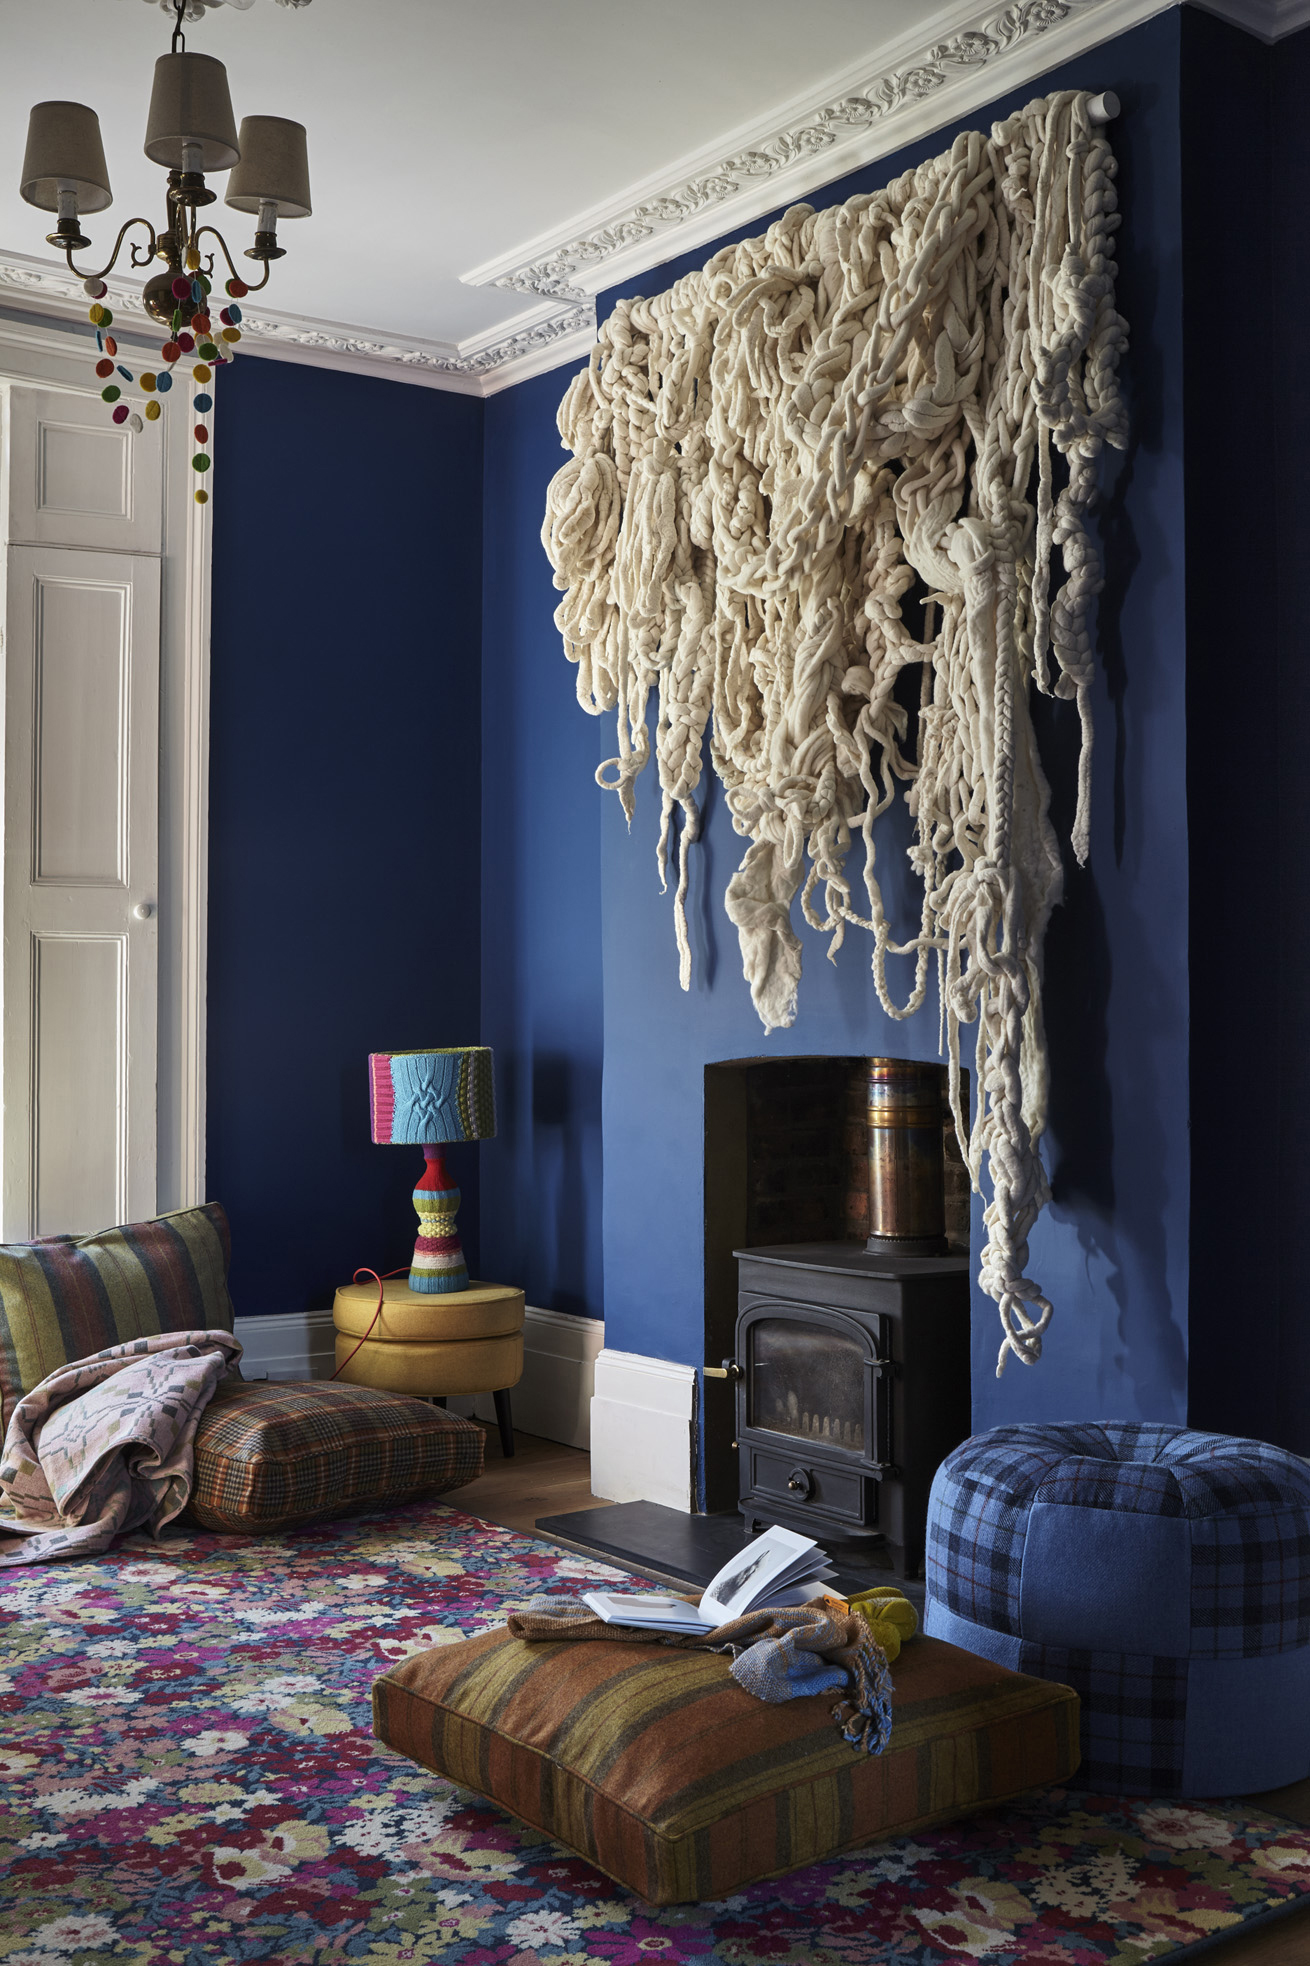 The Campaign for Wool, Wool BnB, London Photo: Peter Dixon Design and Curation: Karina Garrick @karinagarrick